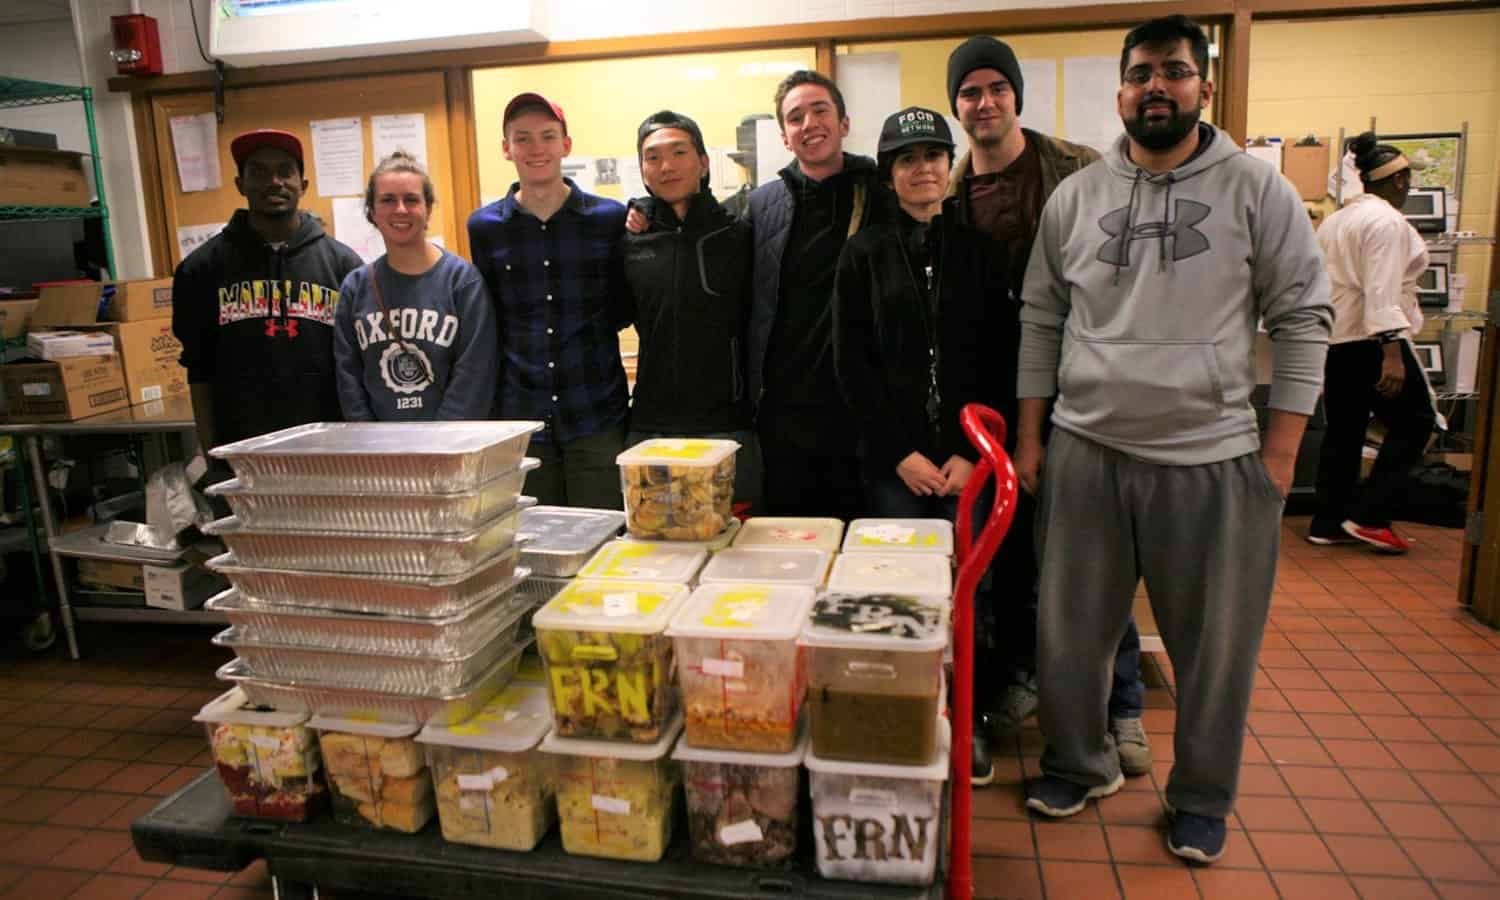 FRN is a large network working to prevent perfectly edible food from being wasted on school campuses - learn how to start at FRN Chapter at your school!